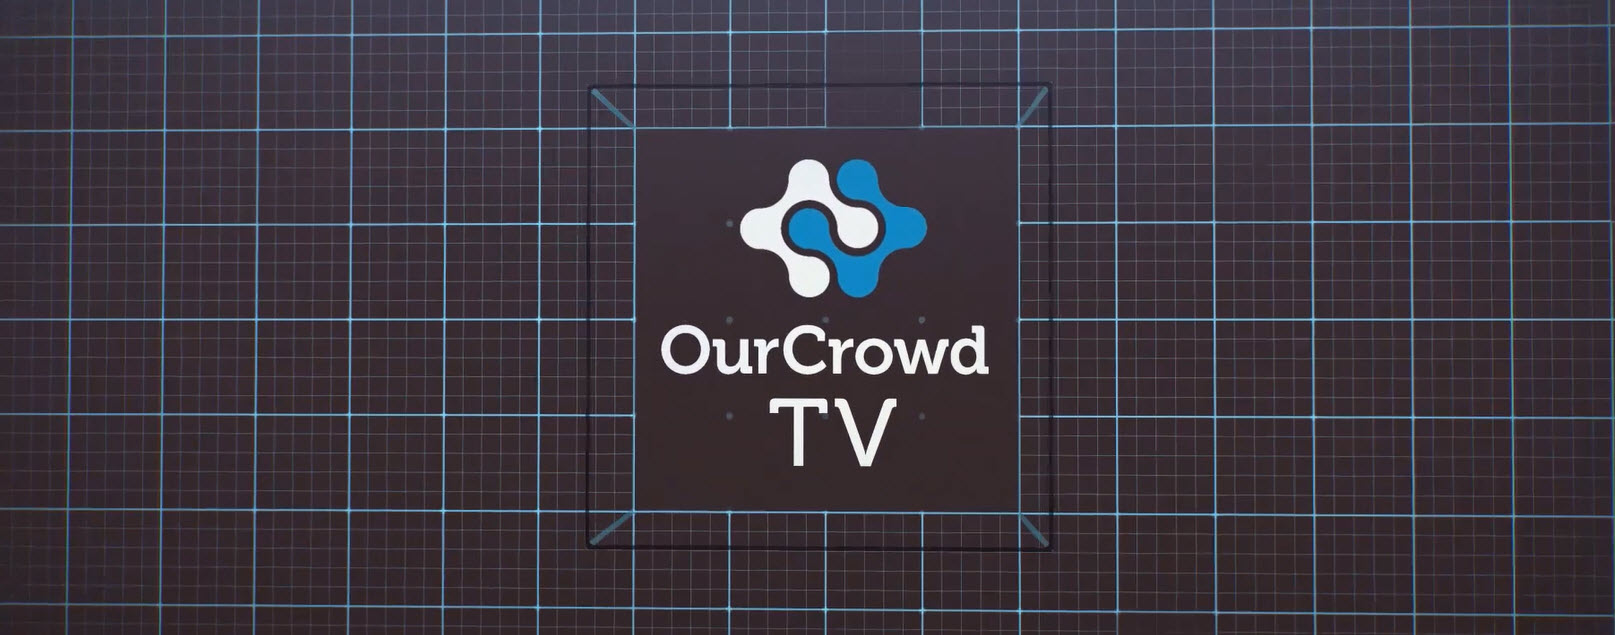 OurCrowd TV #3: The Future is Here